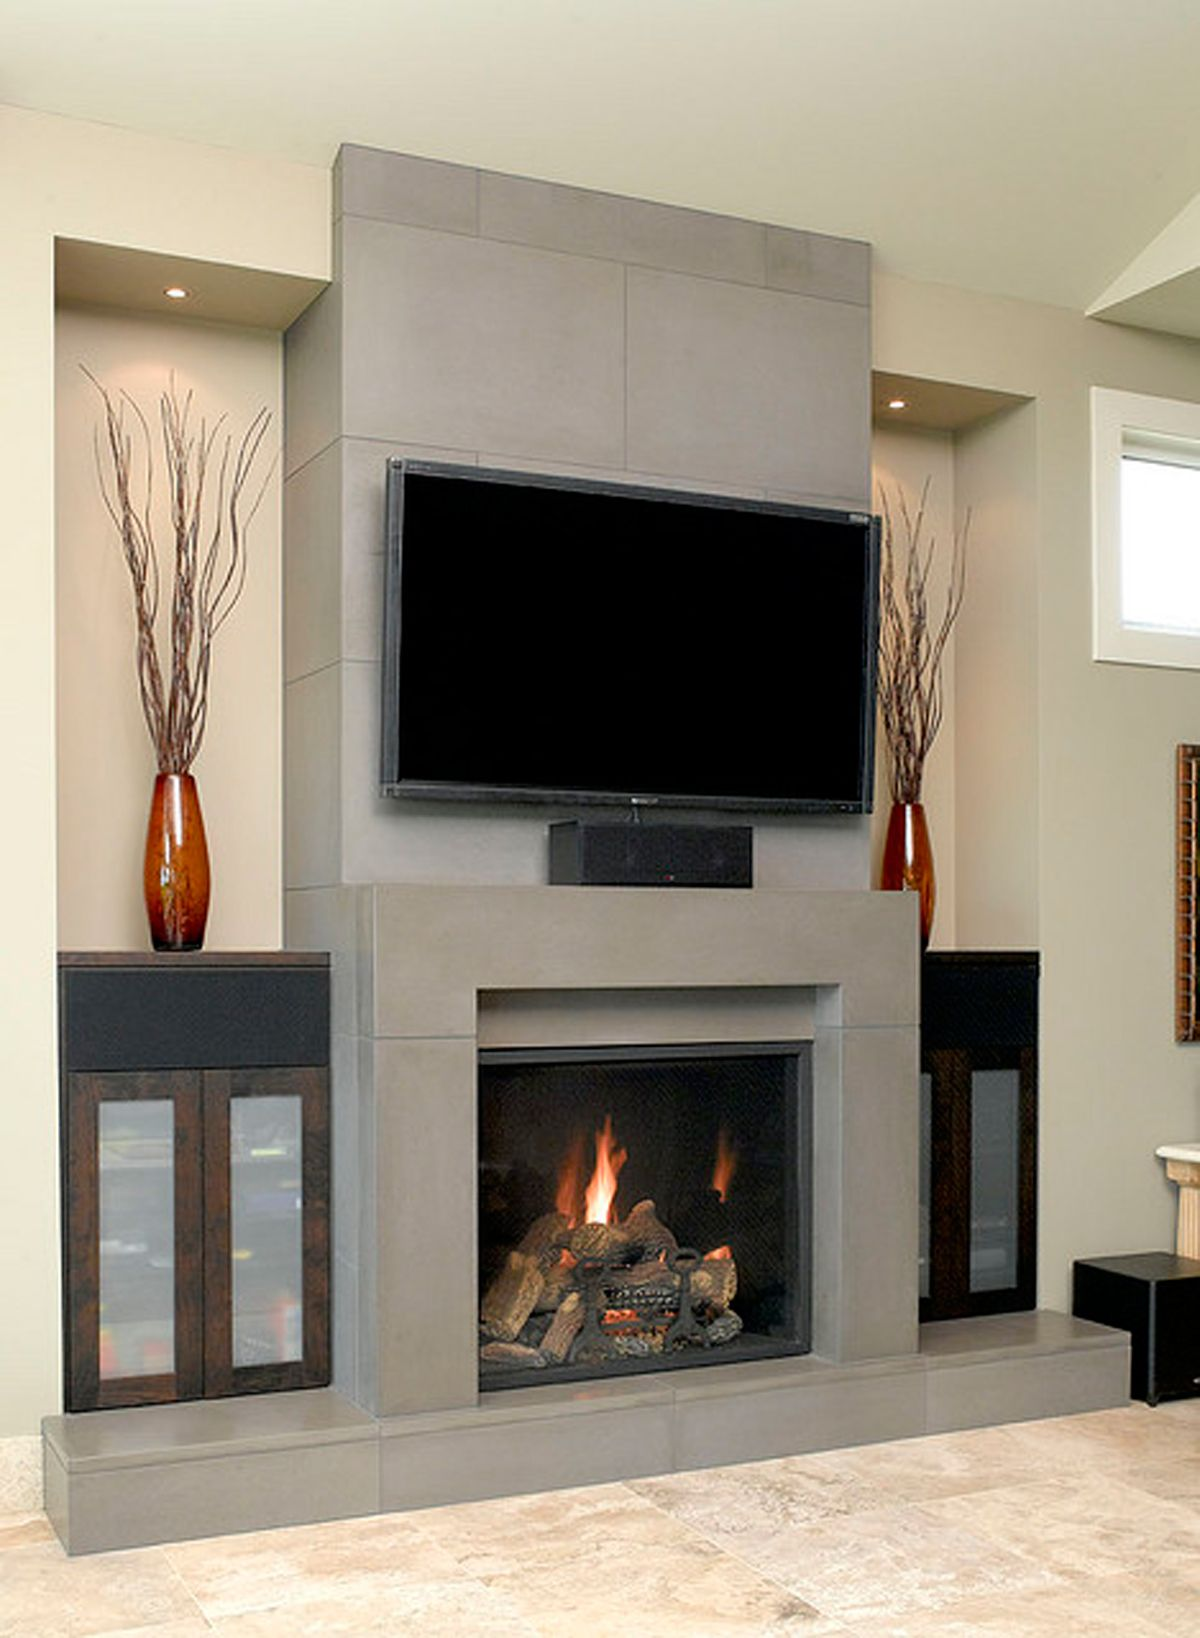 Fireplace Design Ideas modern and traditional fireplace design ideas 45 pictures Fireplaces Designs Fireplace Designs One Of 5 Total Pics Contemporary Gas Fireplace